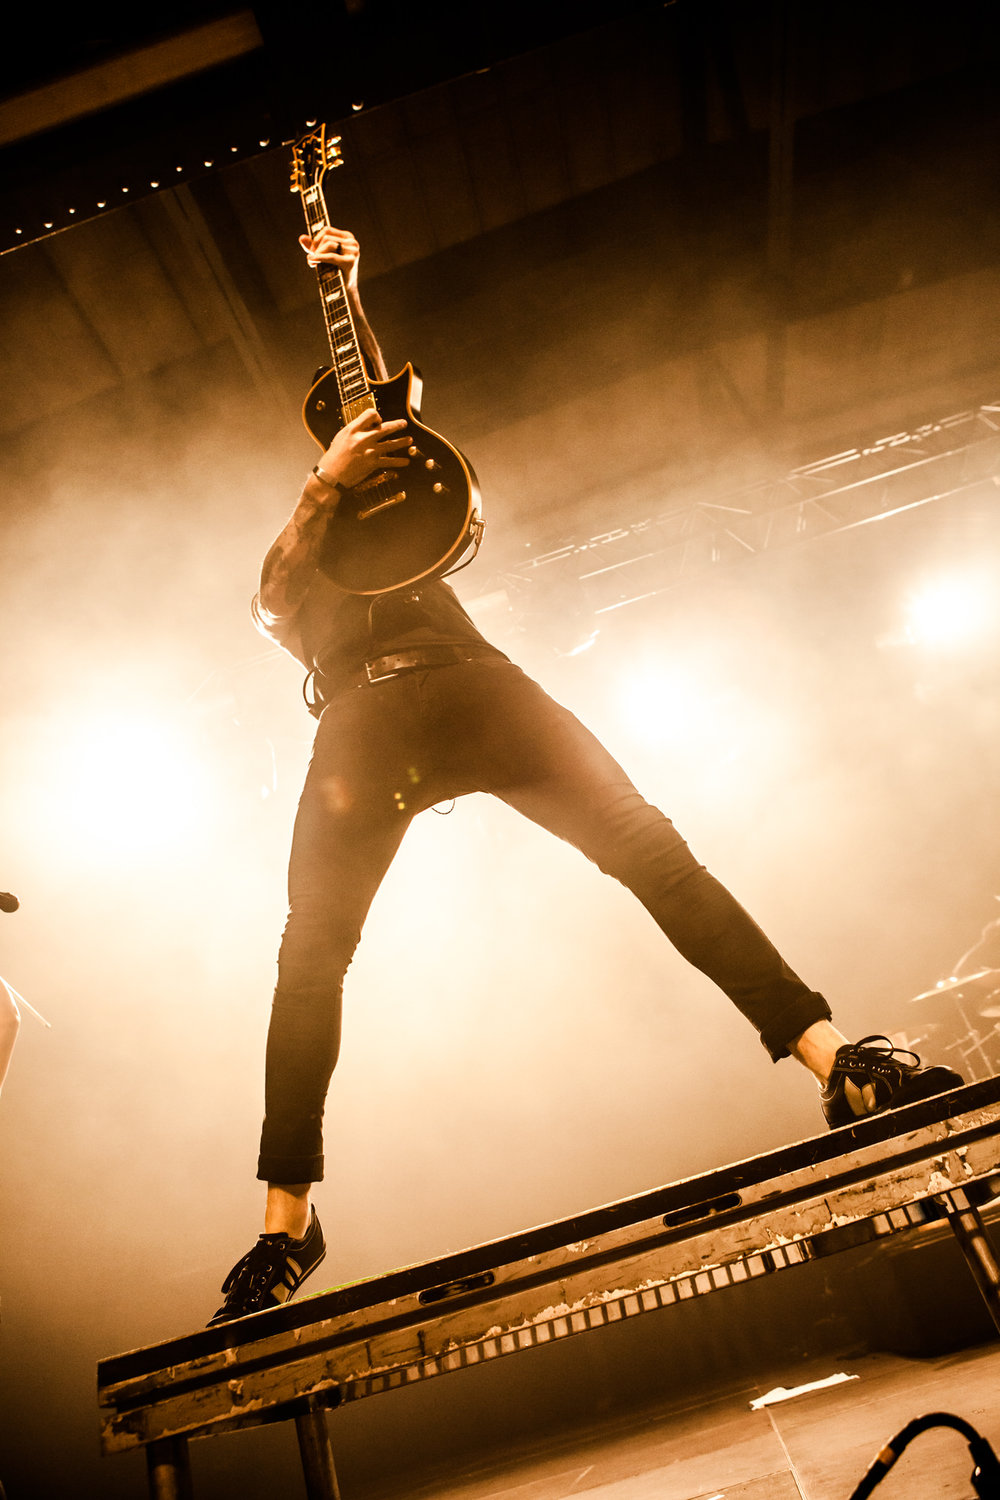 yellowcard-festival-concert-event-music-photography.jpg